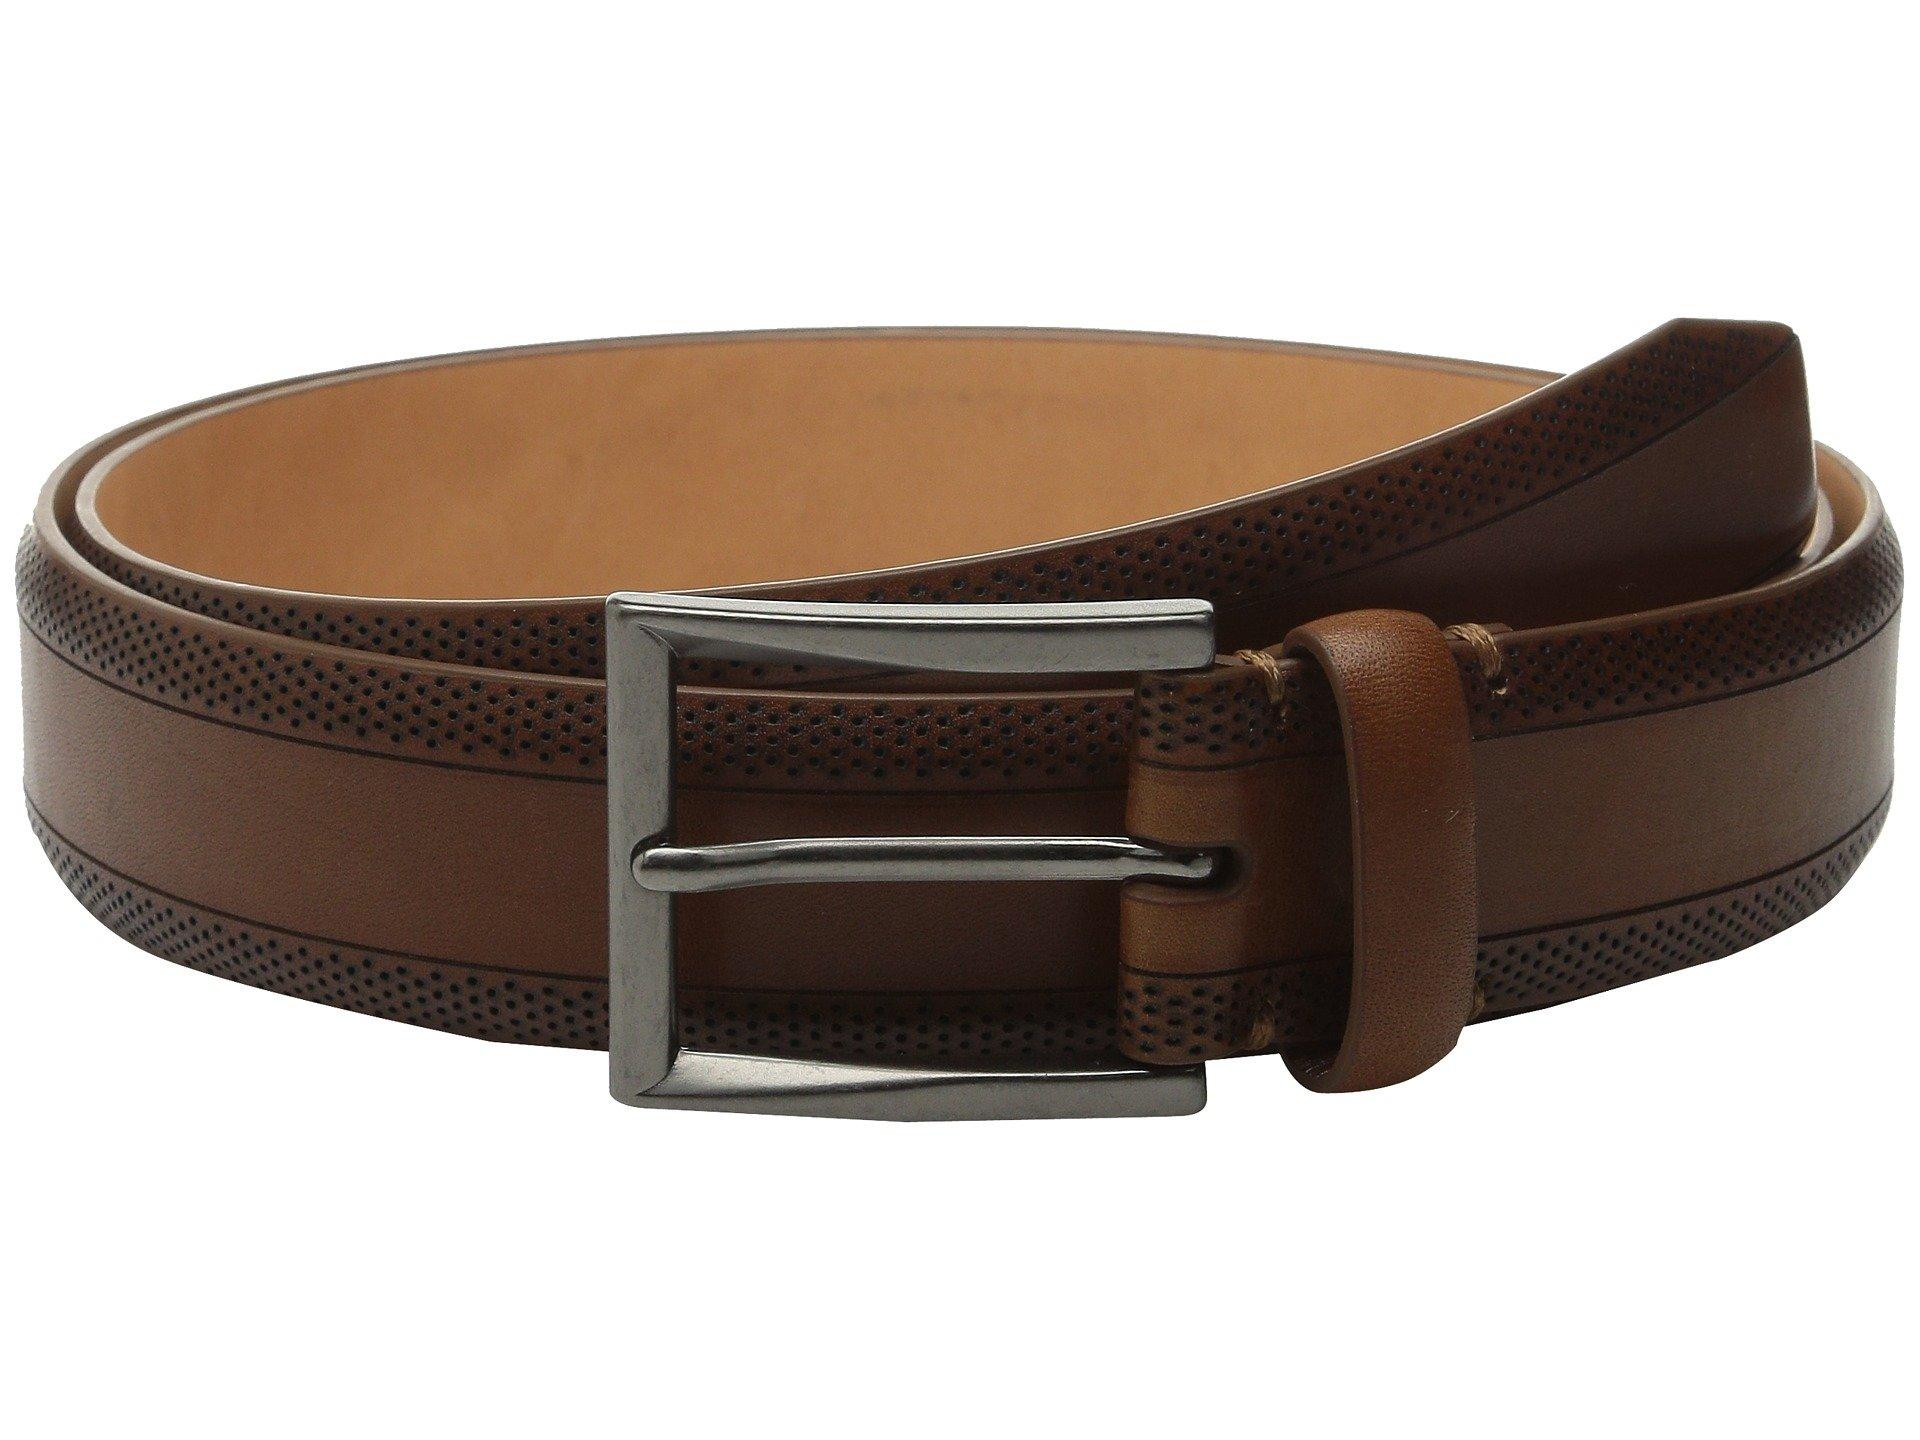 Tommy Bahama Vegetable Tanned Leather W/ Perforated Edges